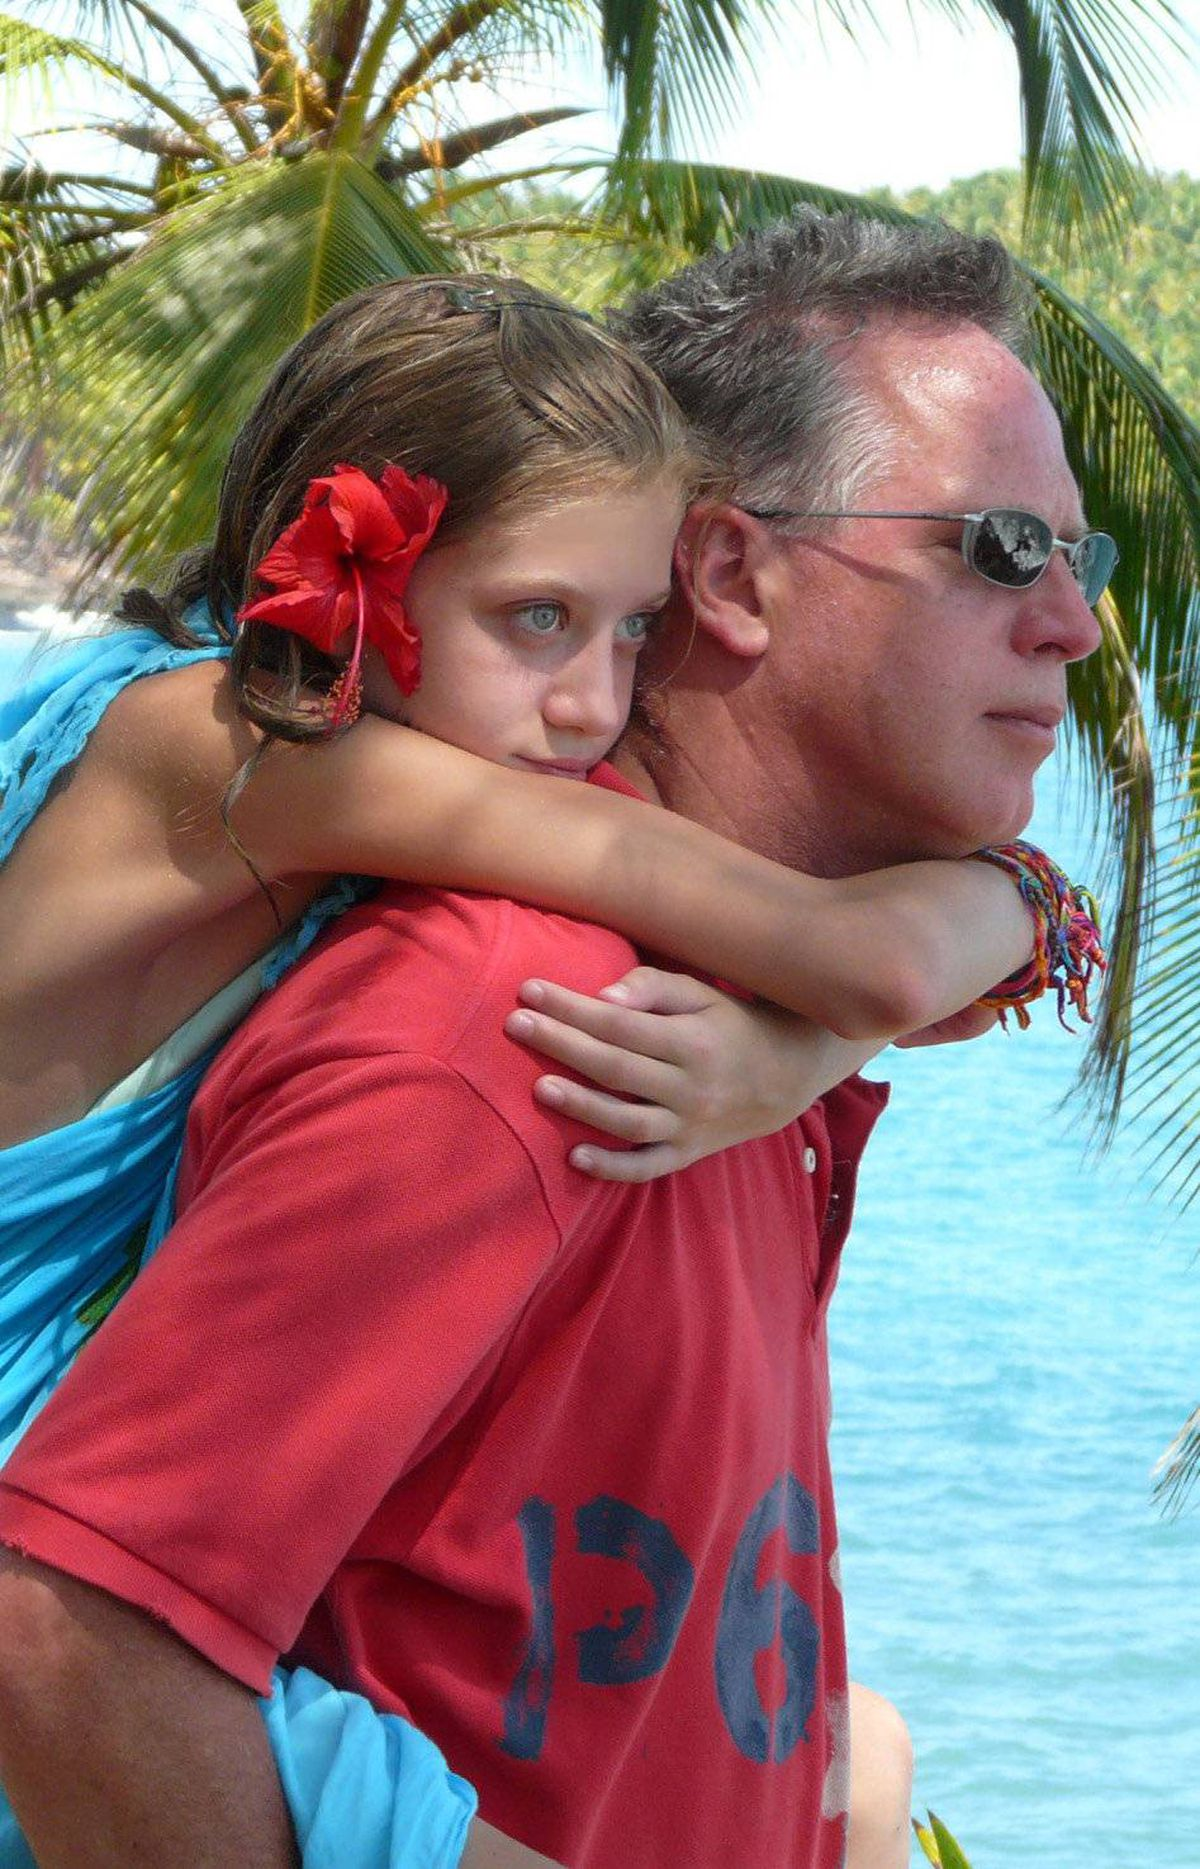 On Devil's Island, off the coast of South America, the temperature was about 40 degress and the humidity was about 85%. Dad was really hot and tired, but he picked up our daughter and carried her.